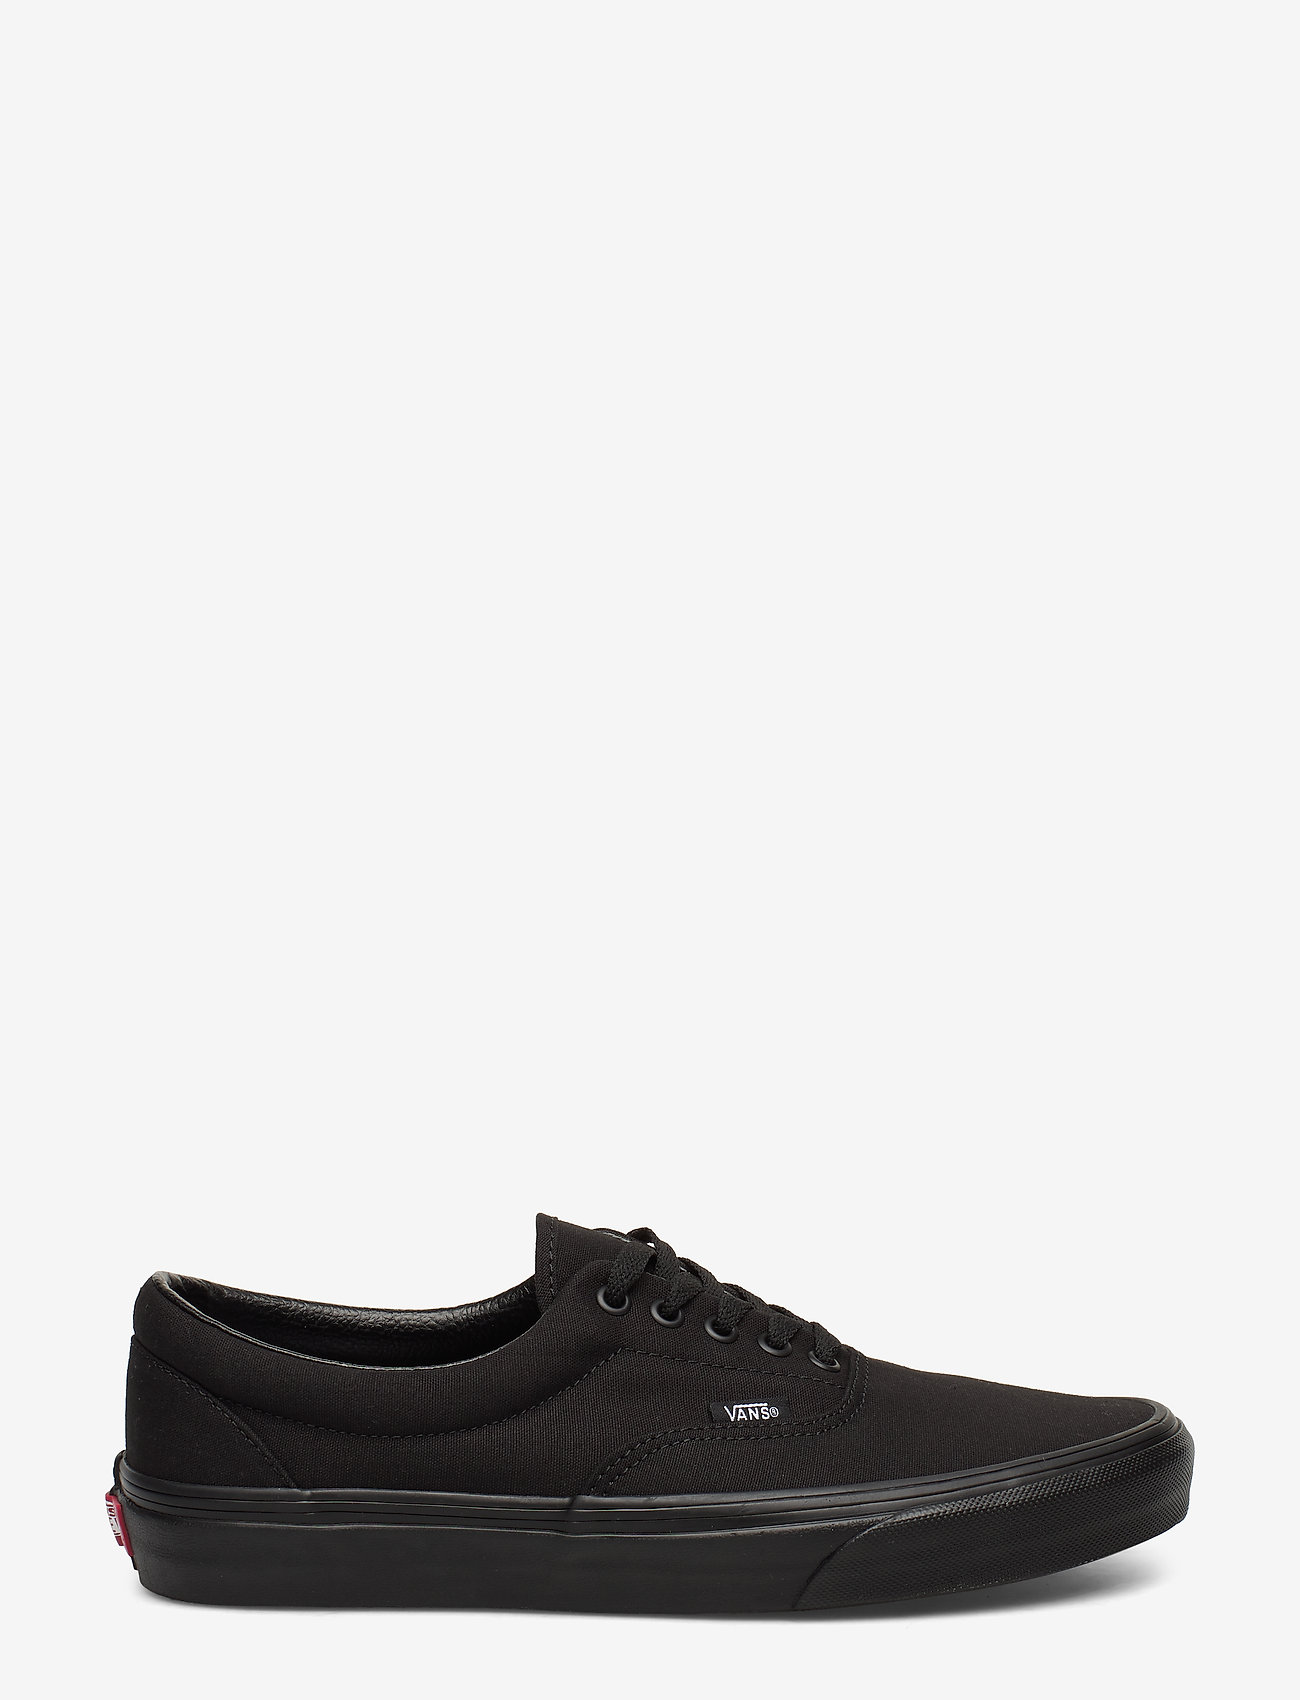 VANS - FULL PATCH - laag sneakers - black/black - 1